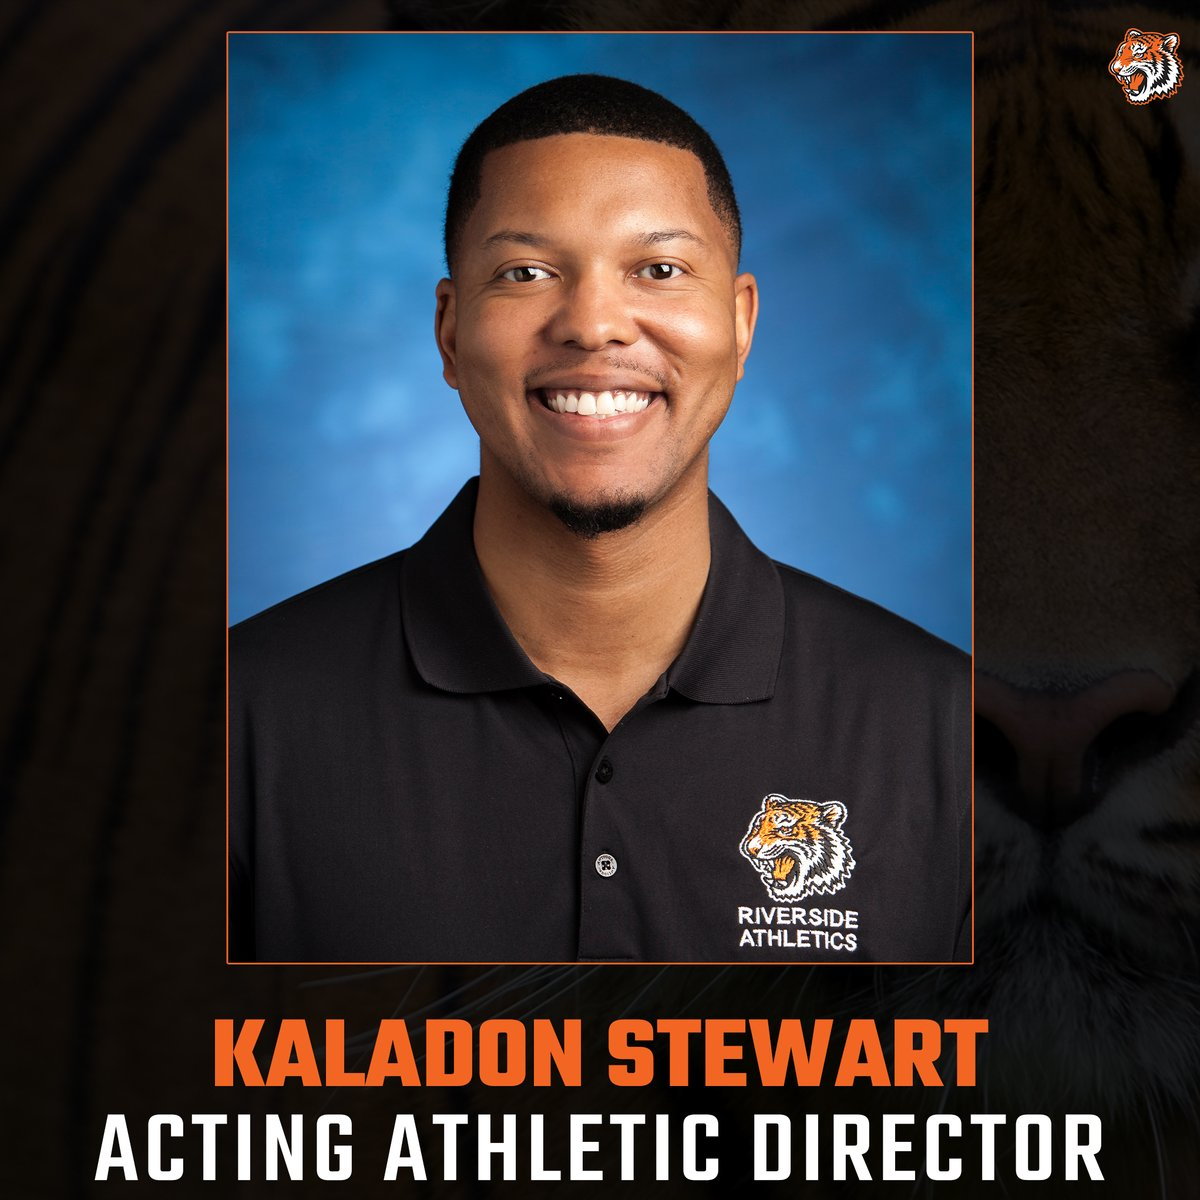 As announced by VP of Student Services Dr. FeRita Carter, Kaladon Stewart has been named the Acting Athletic Director for the RCC athletics department effective July 1. Stewart previously served as the Compliance Director while performing other admin duties. #TheCommunitysCollege https://t.co/8QeXP2KN9W